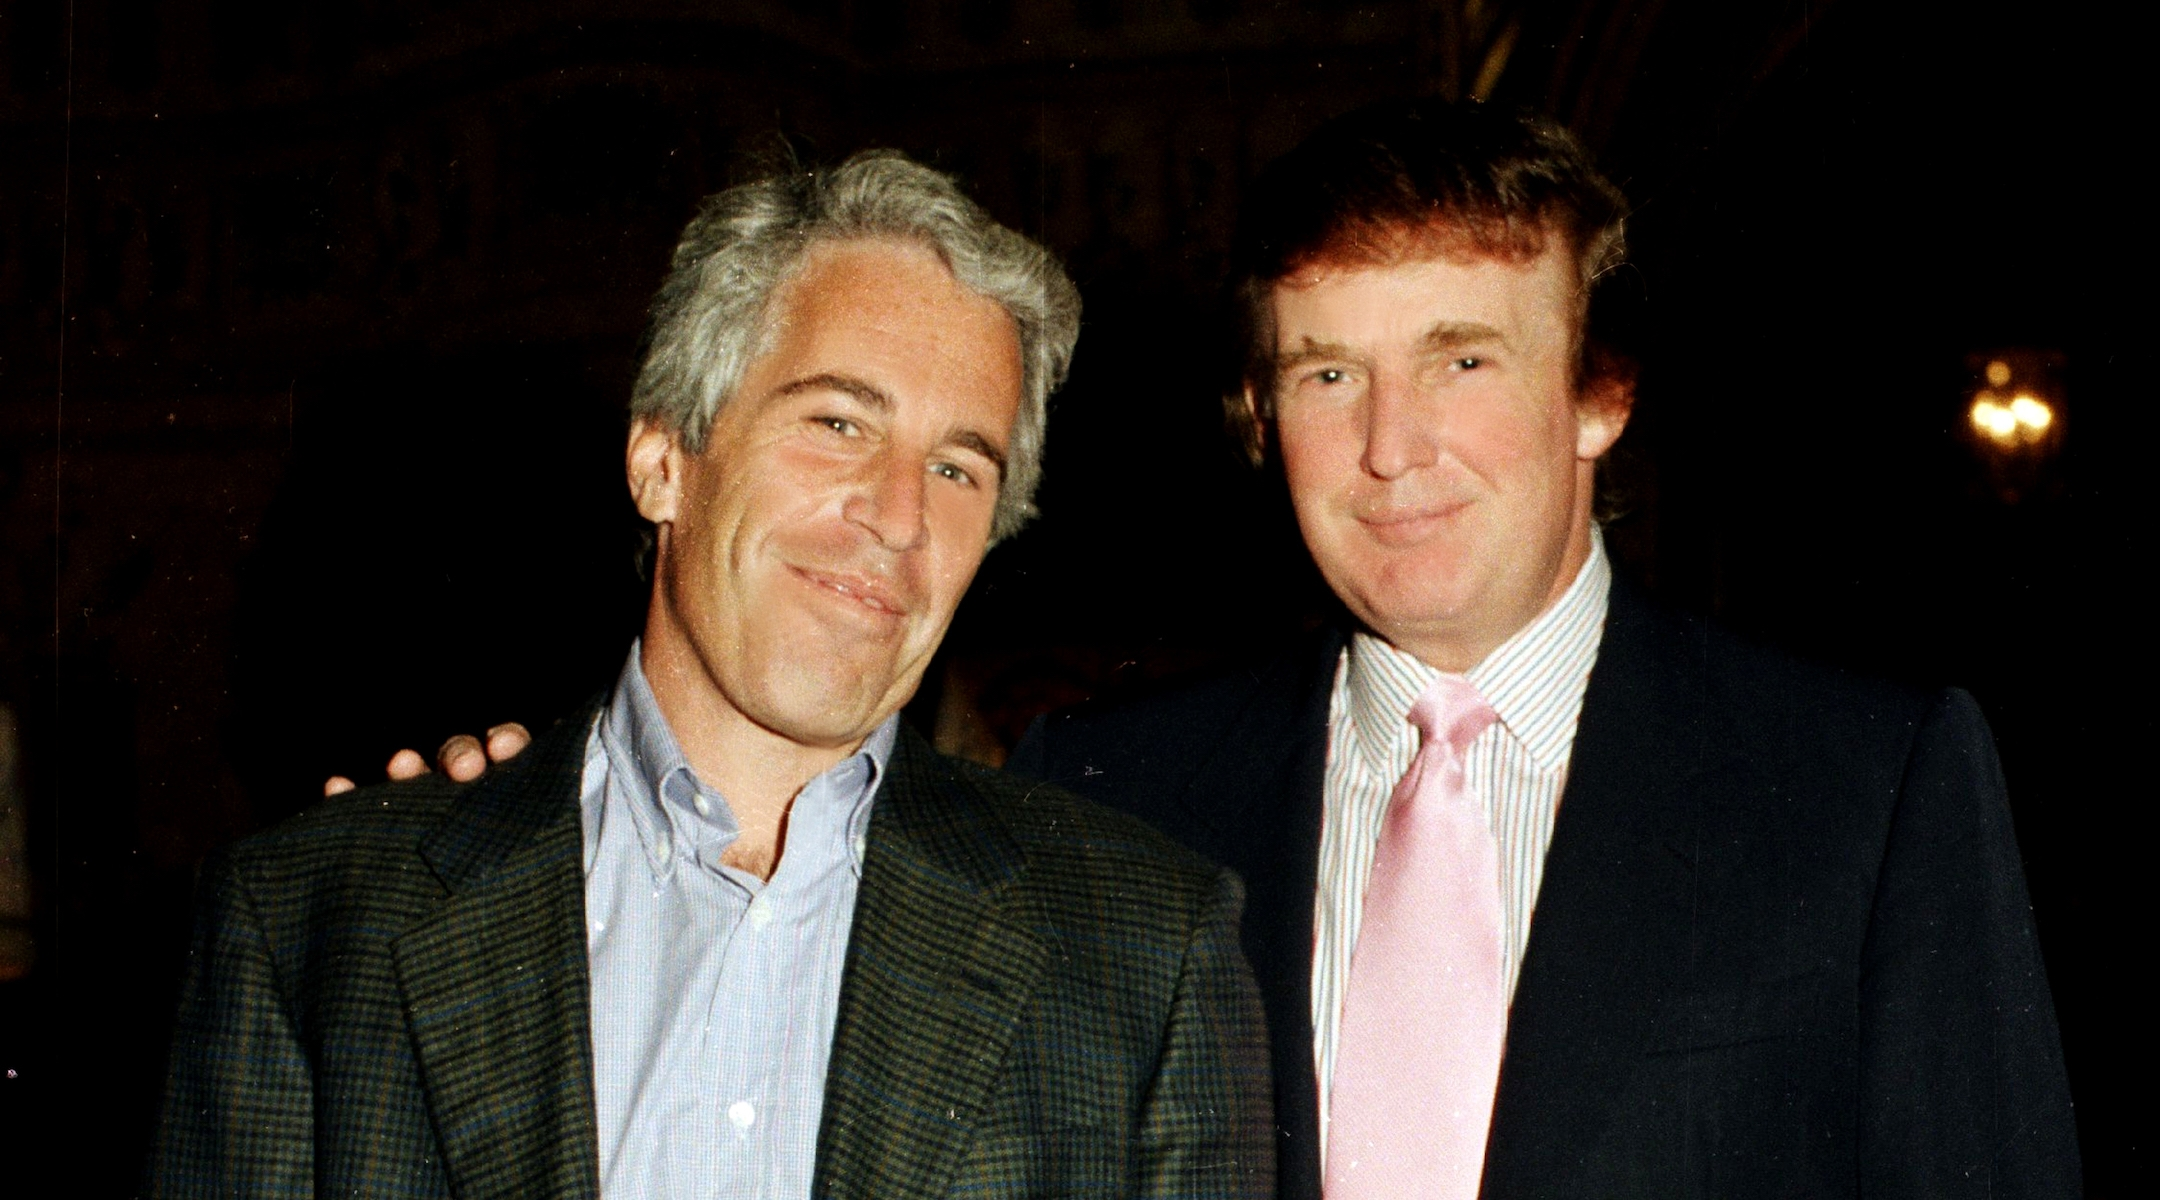 Jeffrey Epstein with Donald Trump at Trump's Mar-a-Lago estate in Palm Beach, Fla., in 1997. (Davidoff Studios/Getty Images)